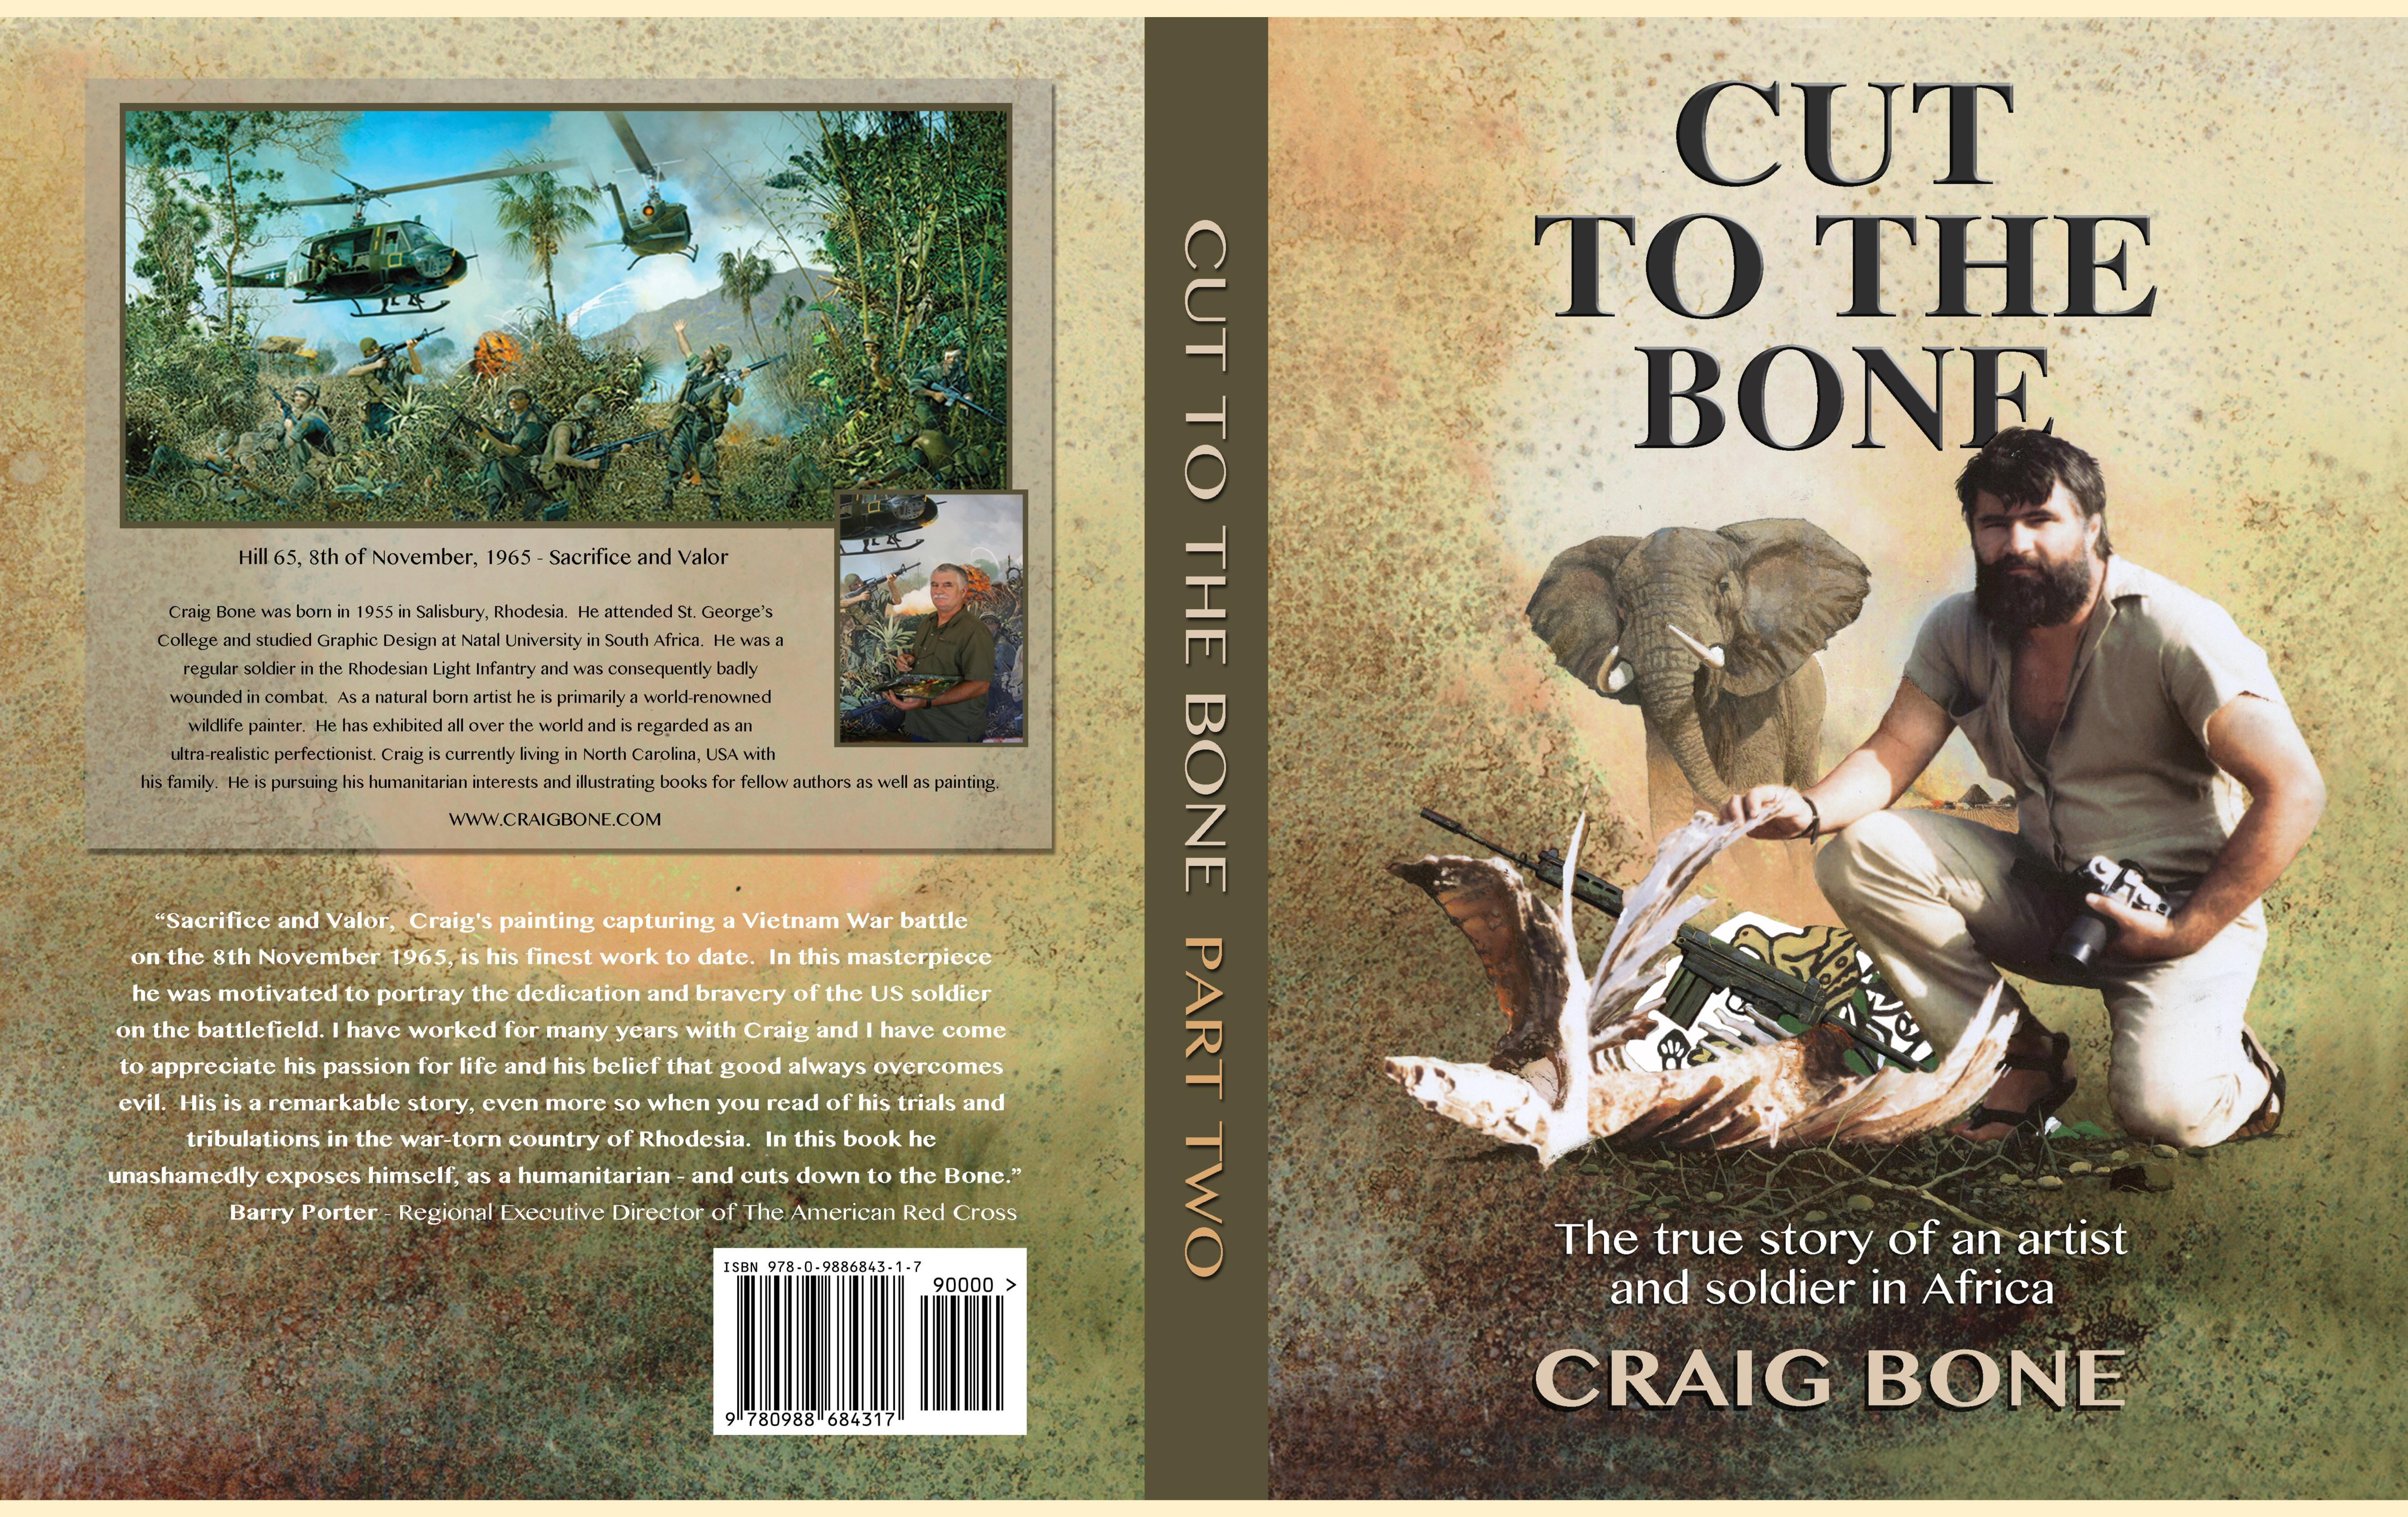 Cut to the Bone Part 2 cover image